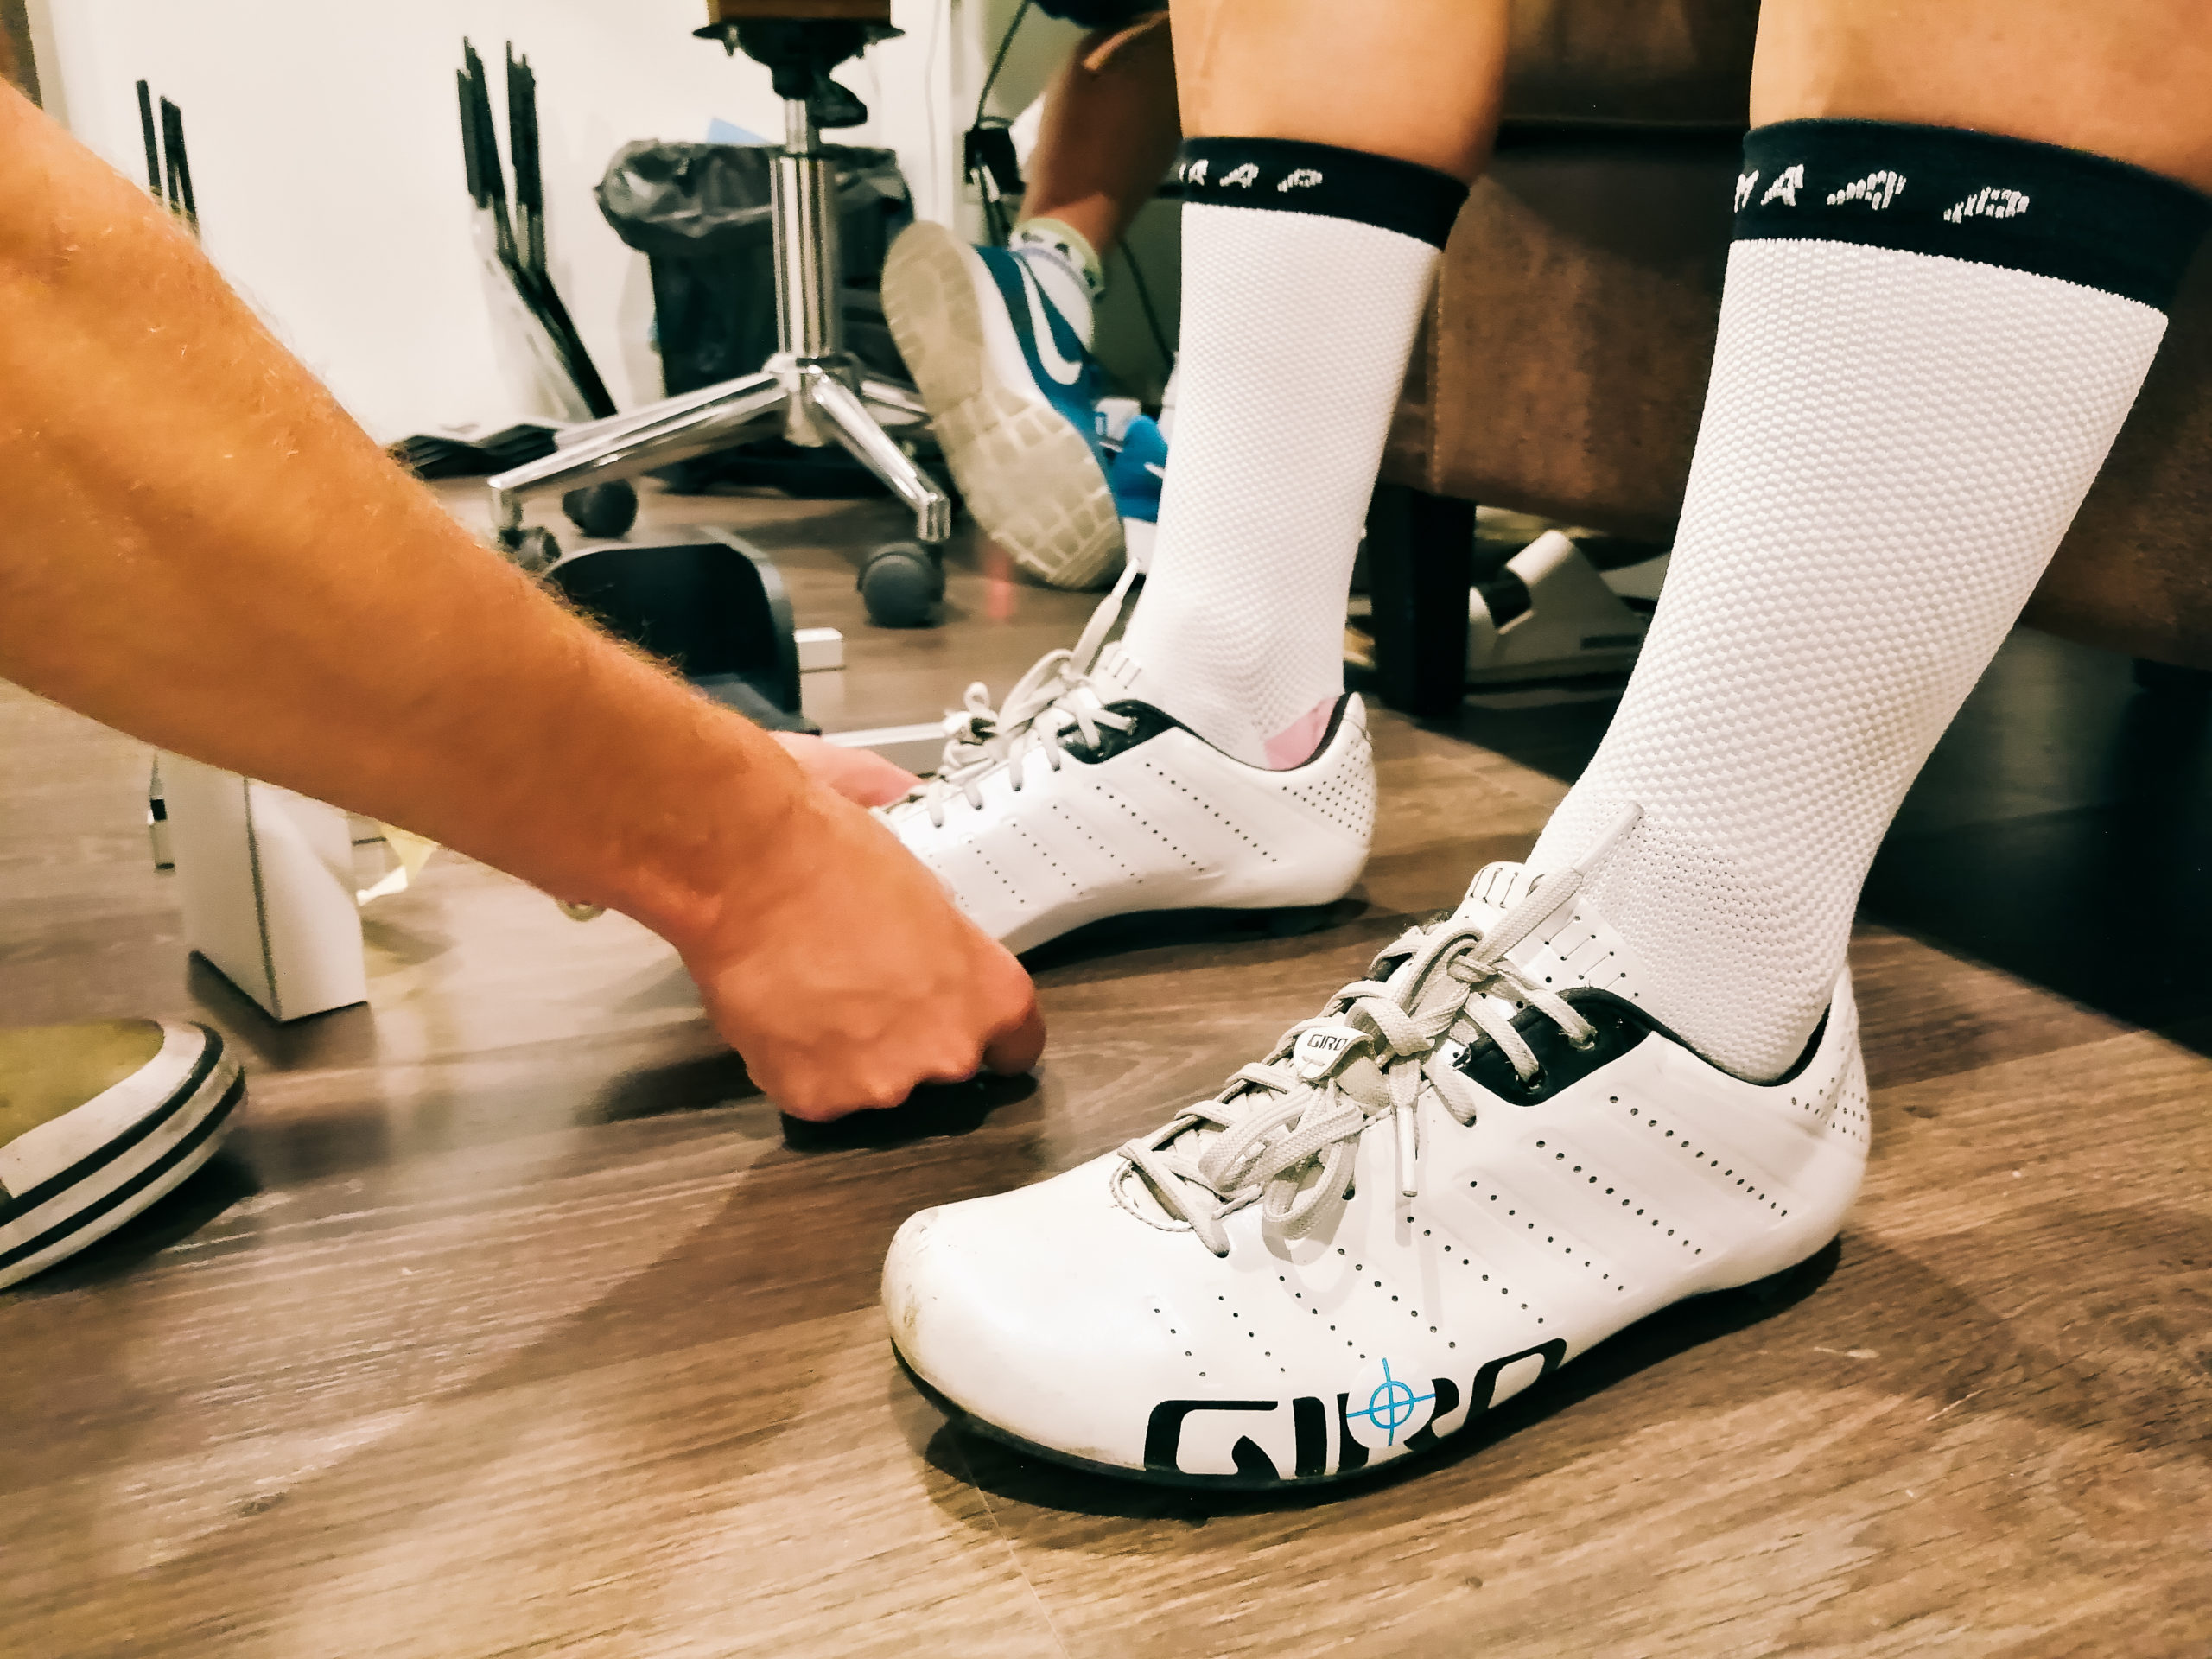 Get the right fit on your new bike with a bike fit in Girona